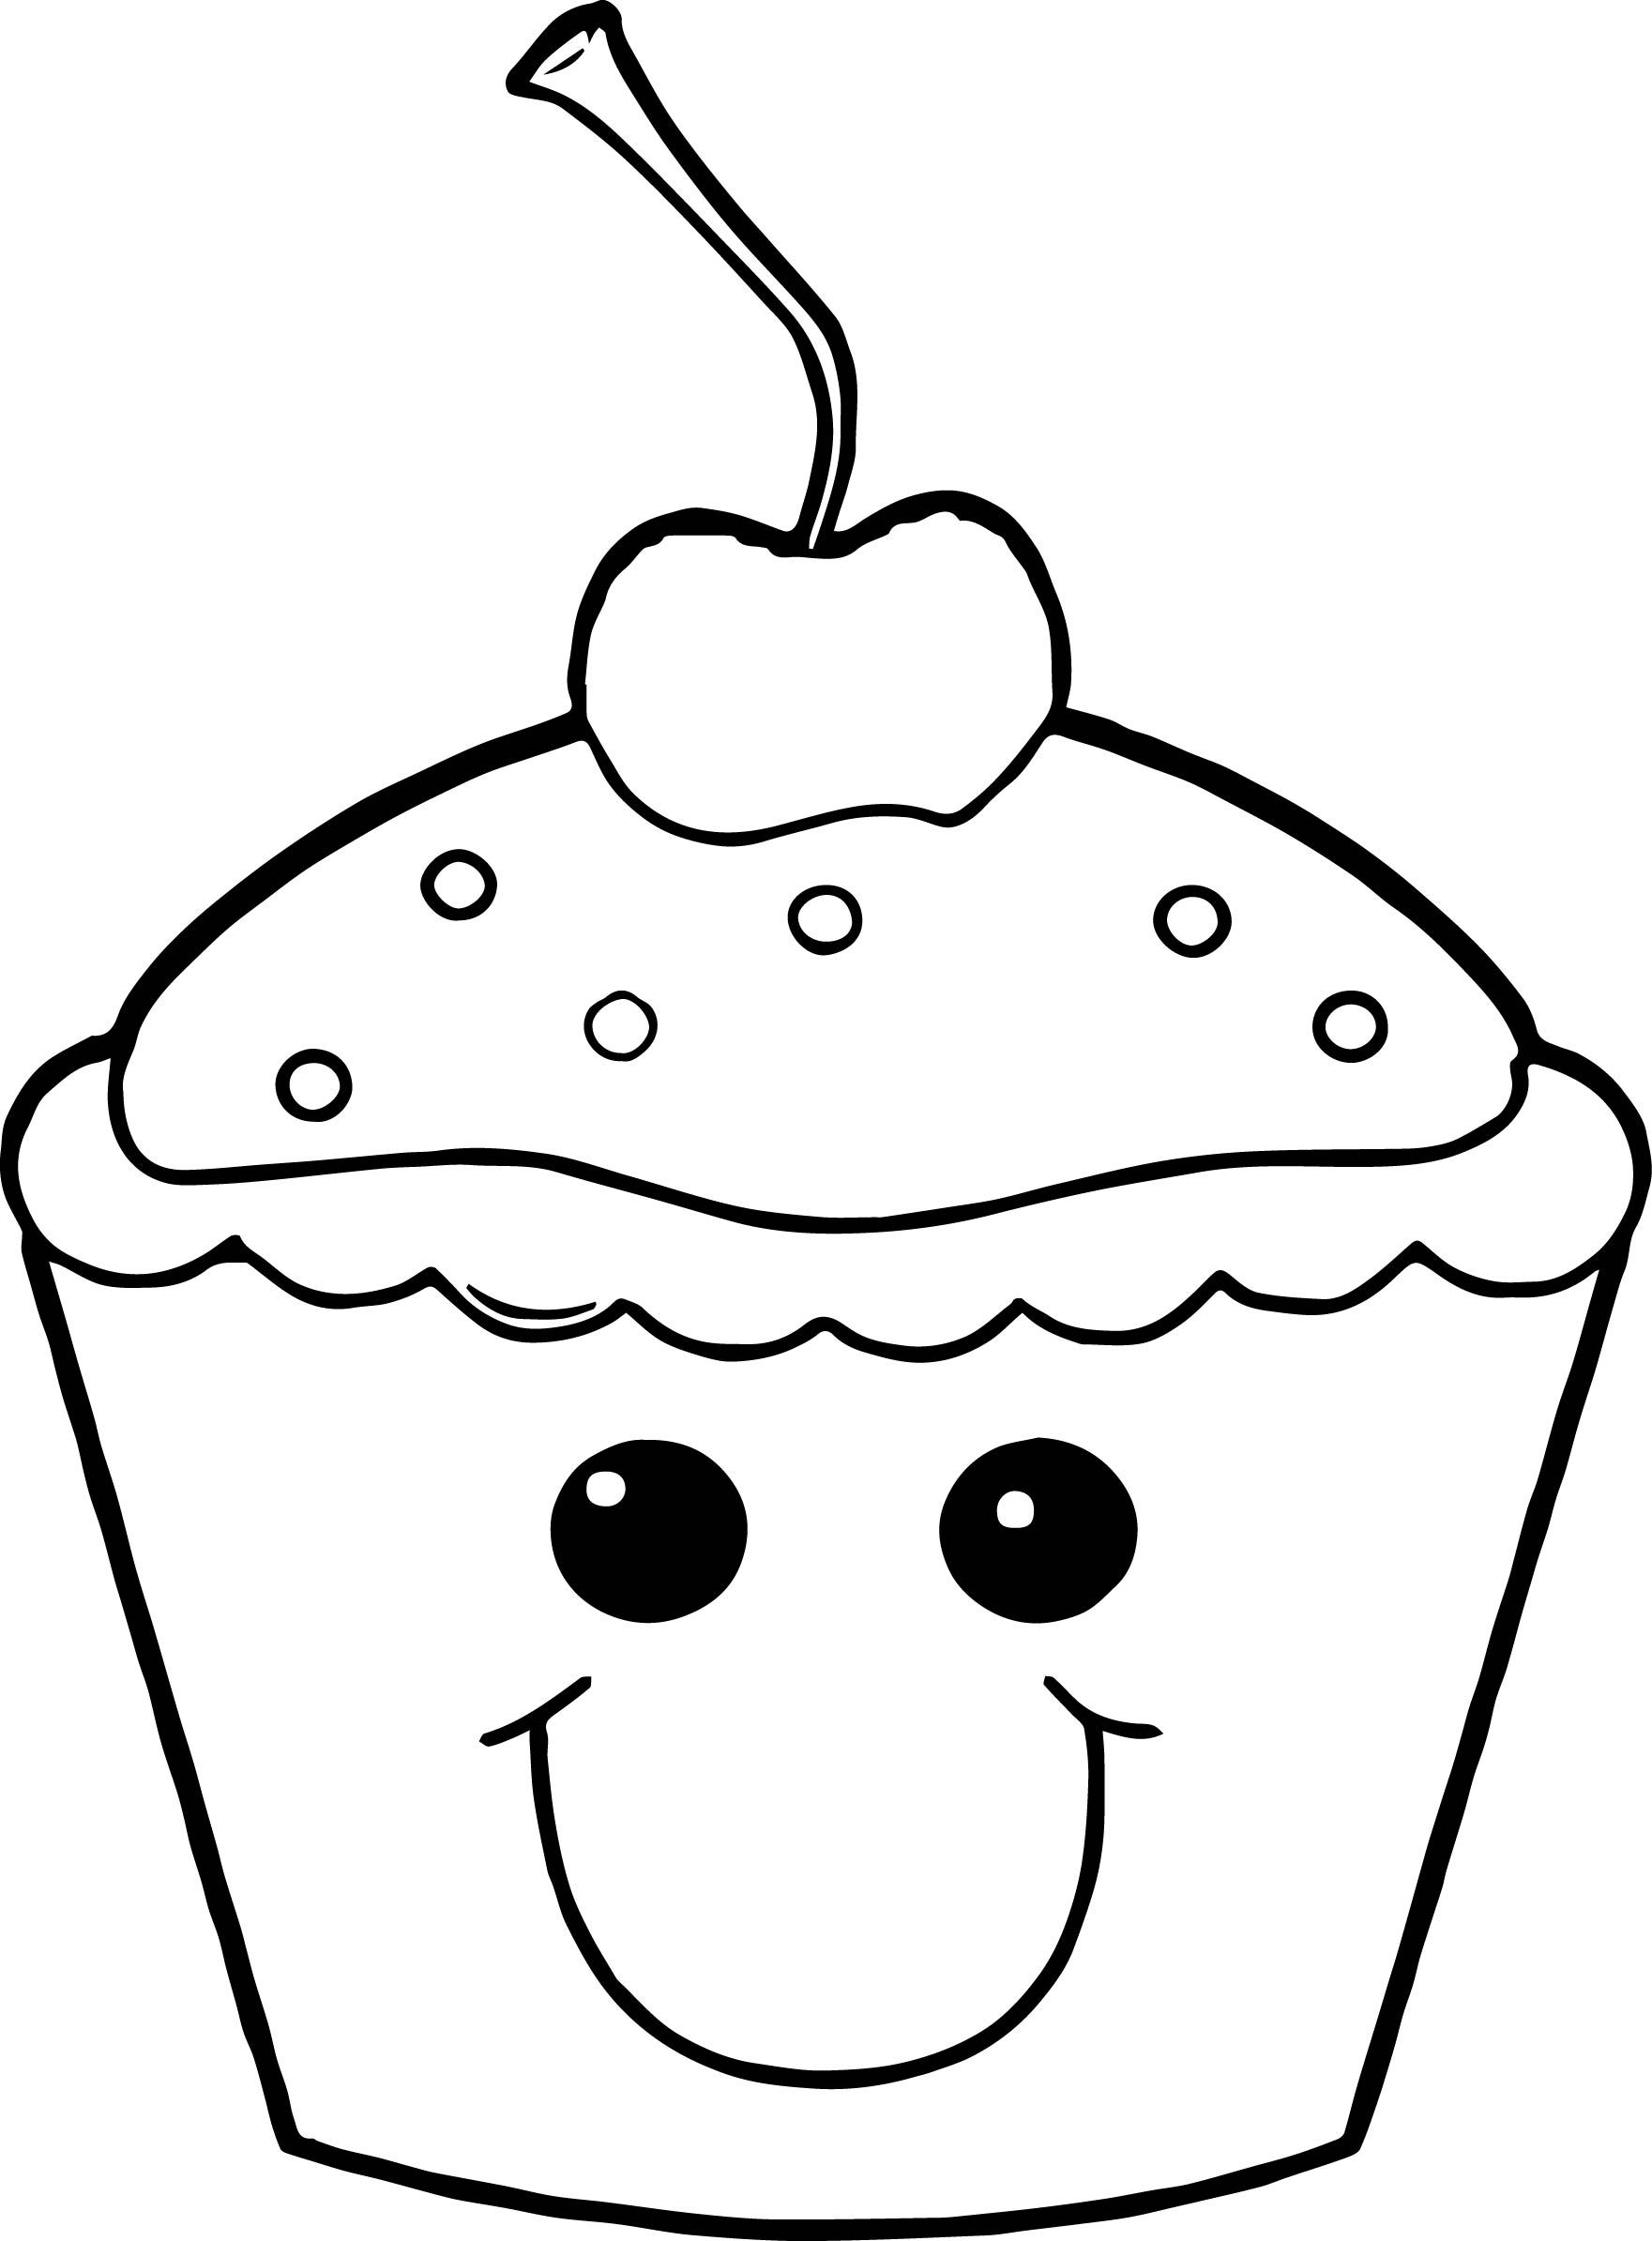 Cupcake Coloring Pages   ice cream & cupcakes & candy   Pinterest ...